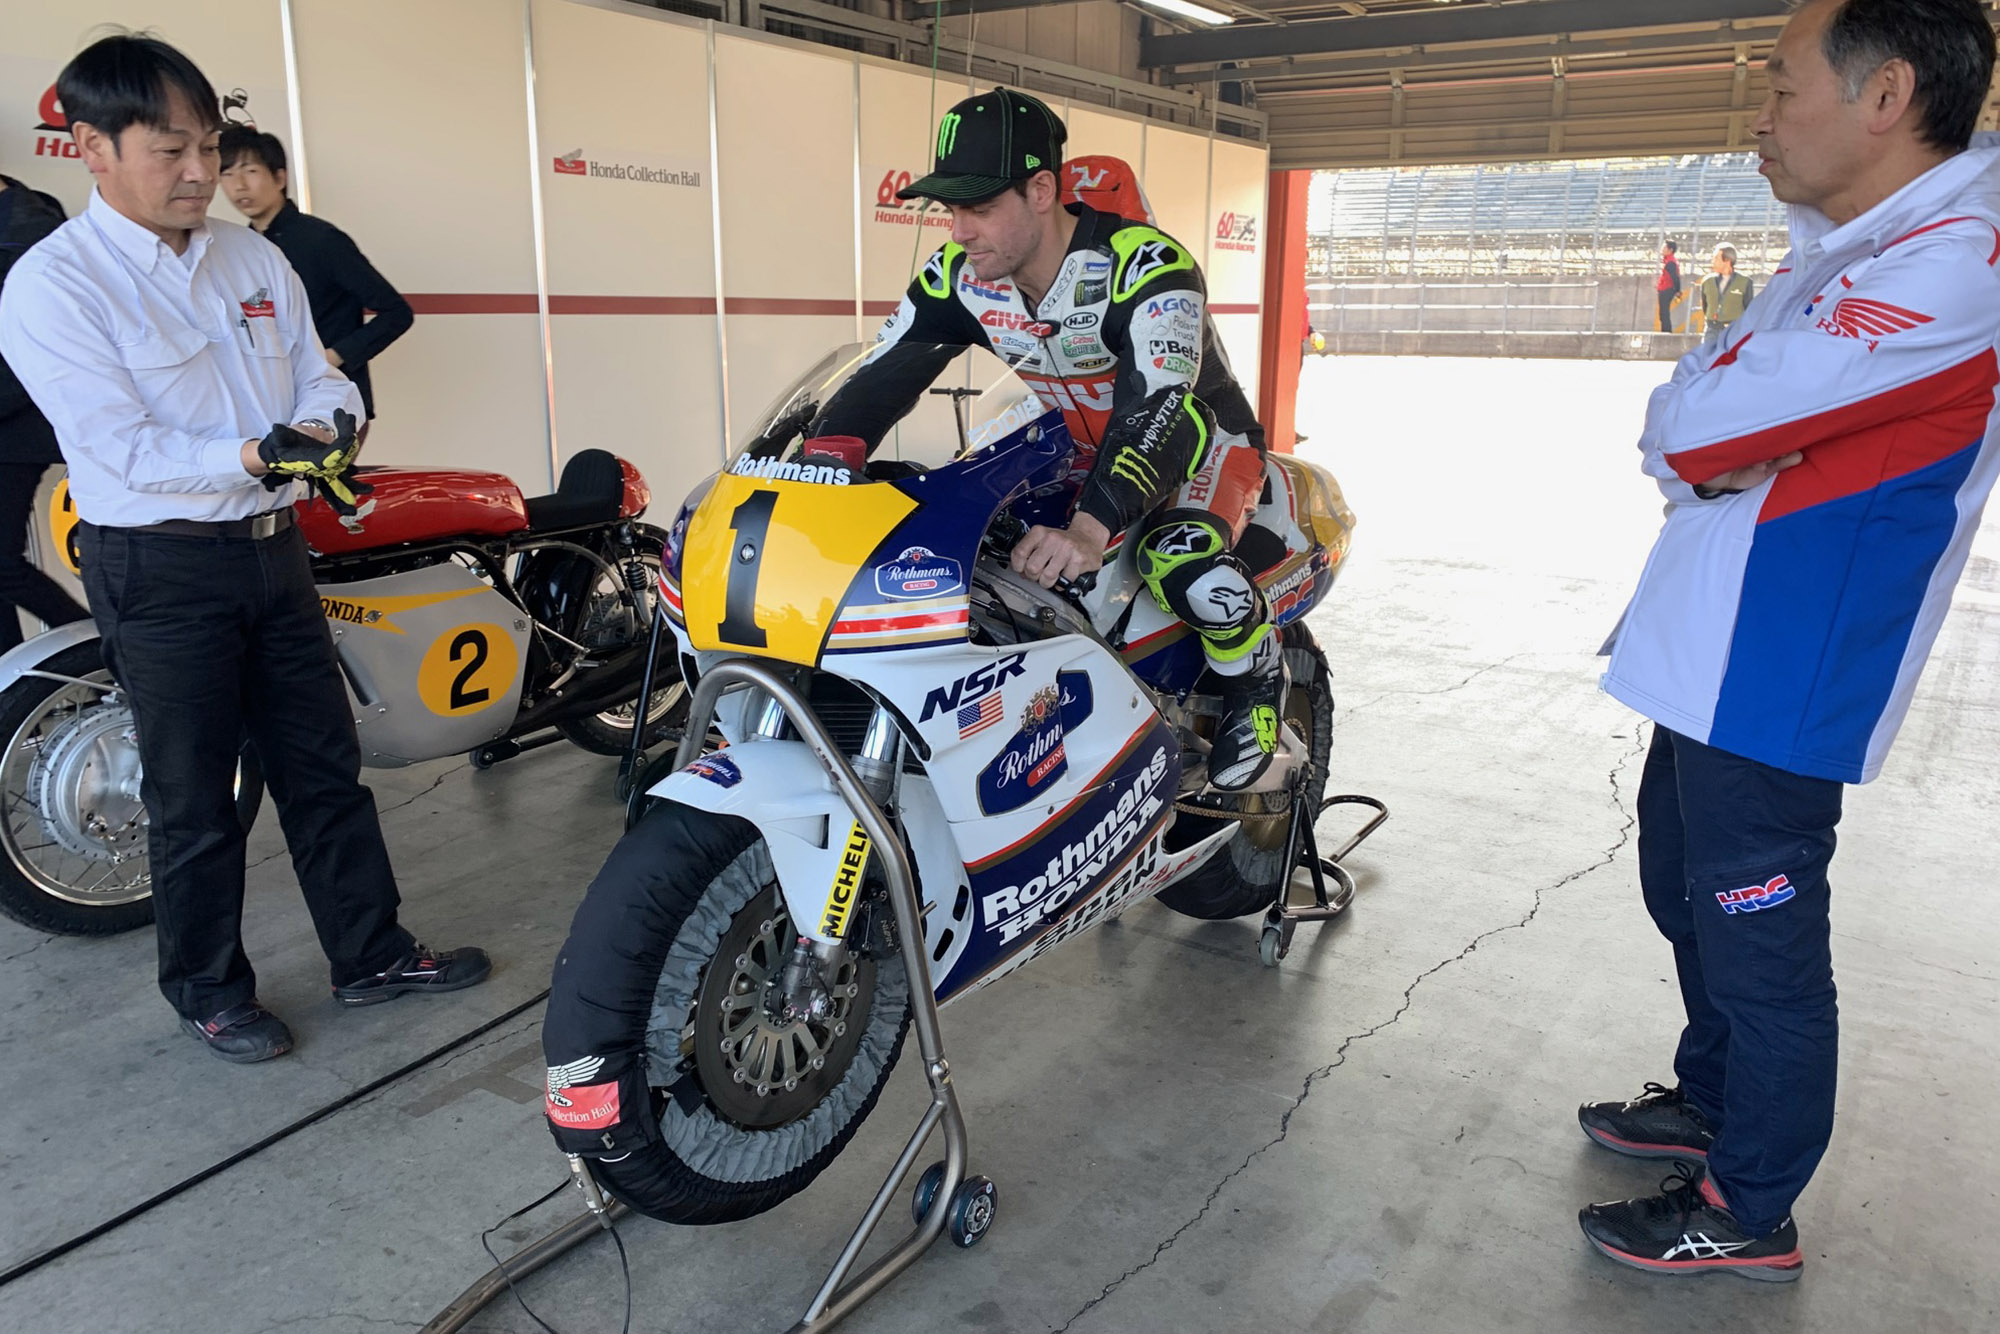 Cal Crutchlow on Eddie Lawson's Honda NSR500 in the pits during the Honda Thanks Day 2019